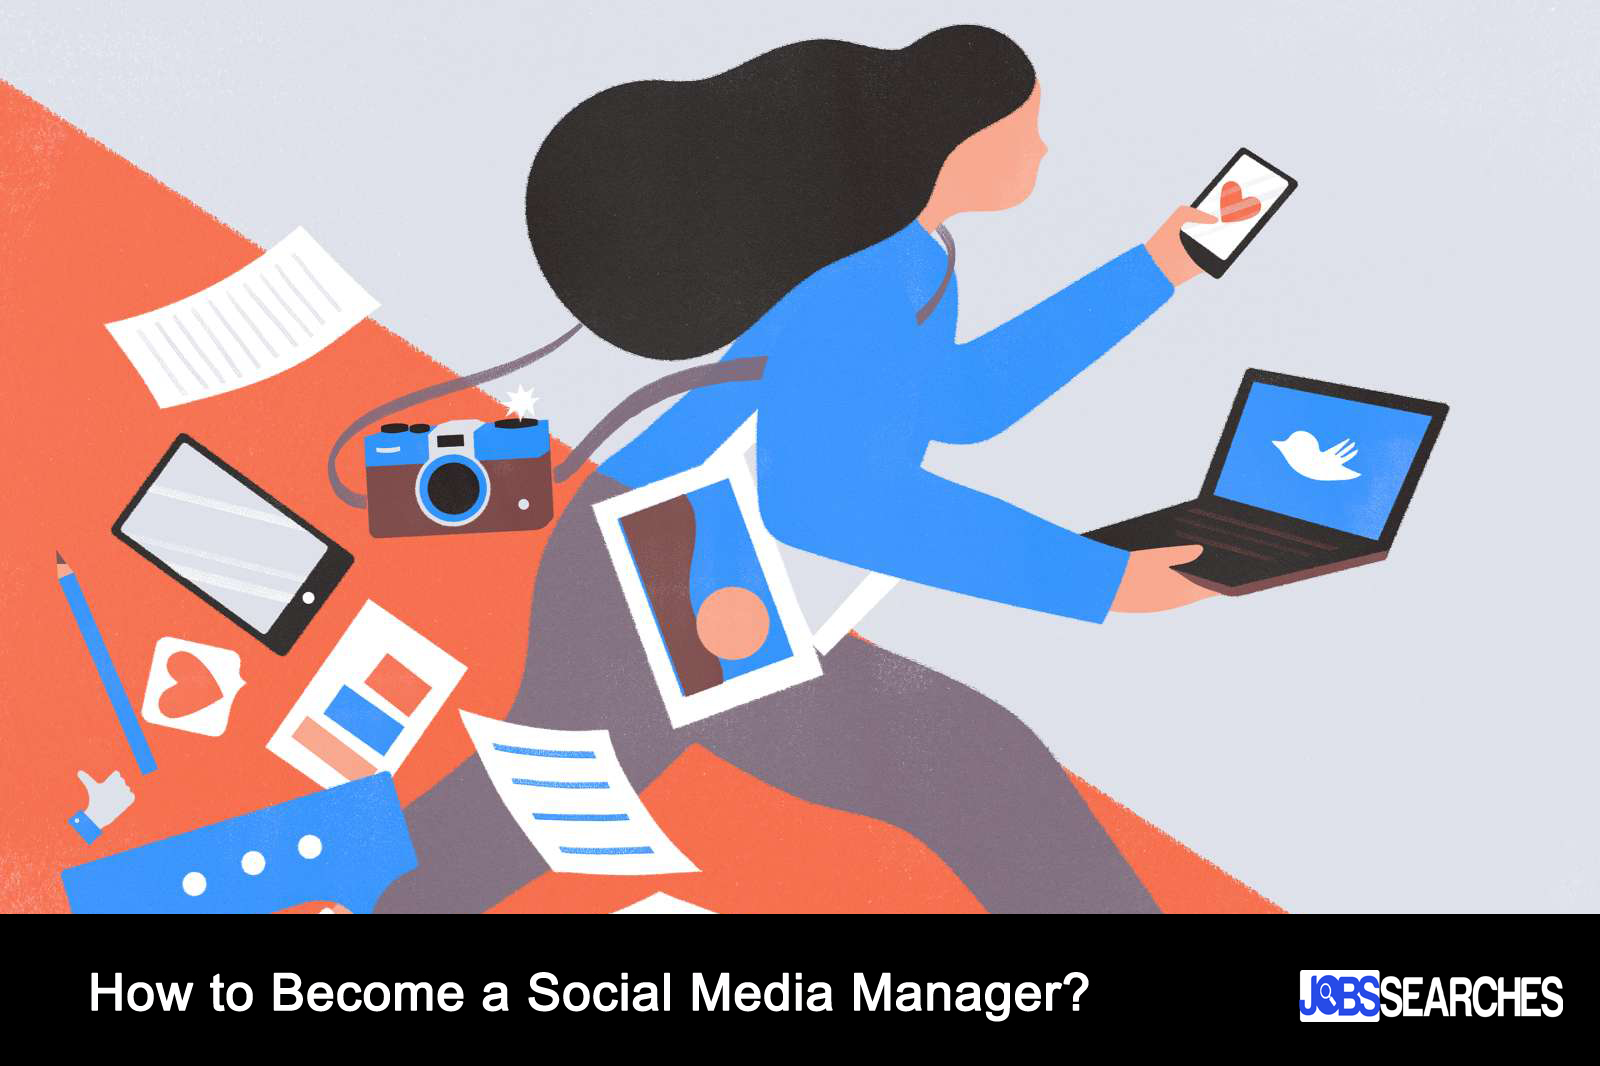 How to Become a Social Media Manager?